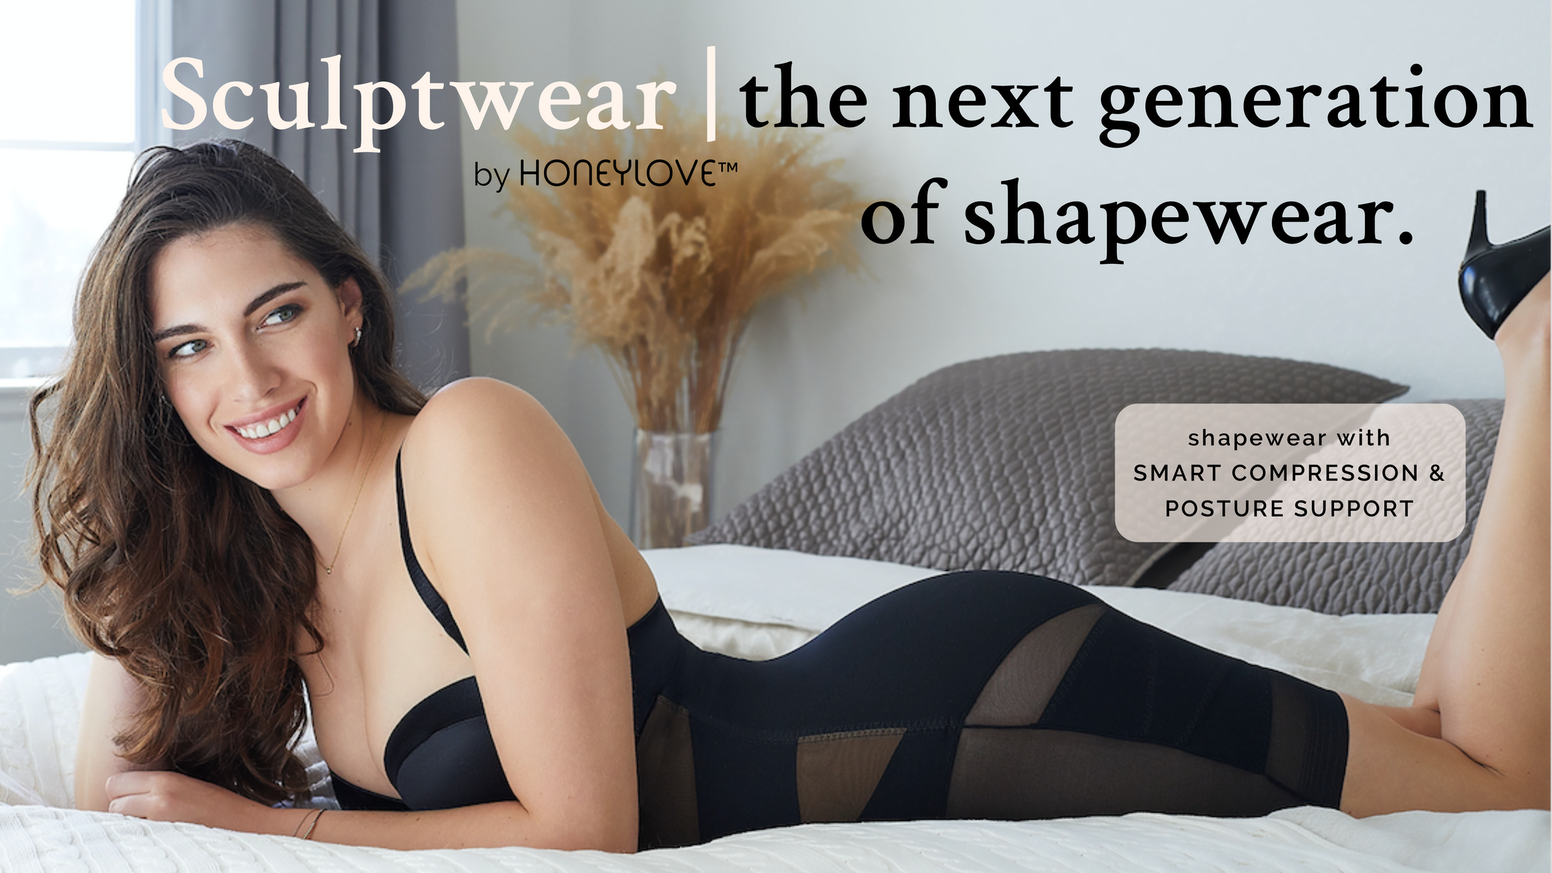 ab9d5a122 Sculptwear - The Next Generation of Shapewear by HoneyLove by ...